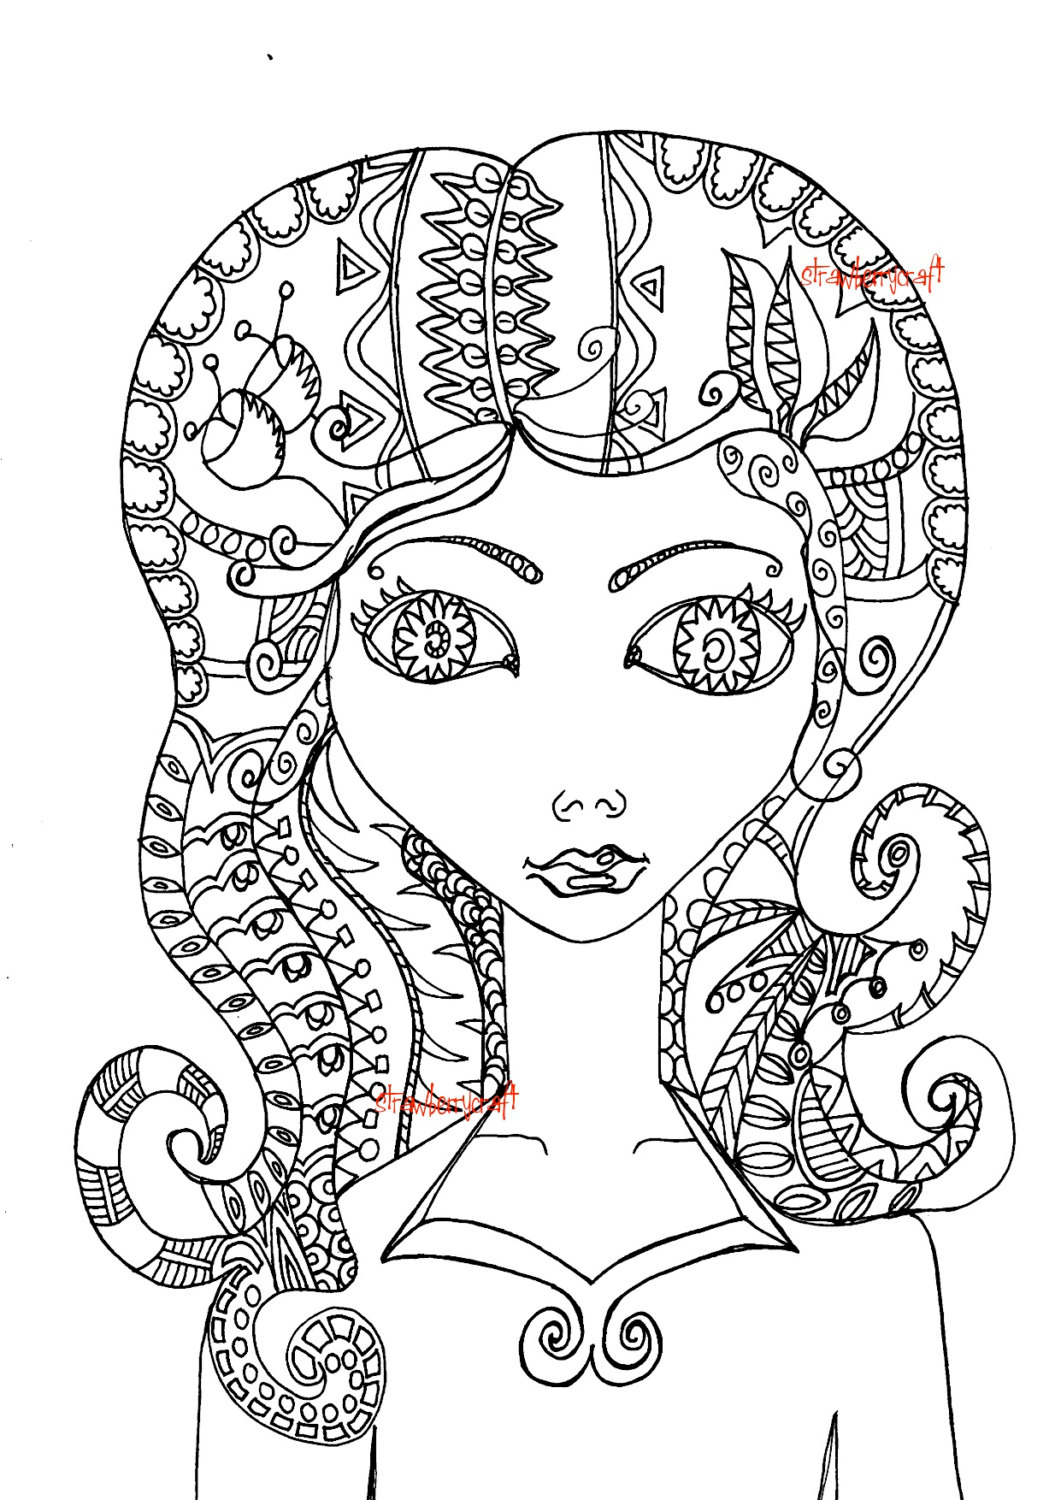 coloring pages of girls realistic realistic girl coloring pages duathlongijon coloring blog girls realistic pages coloring of